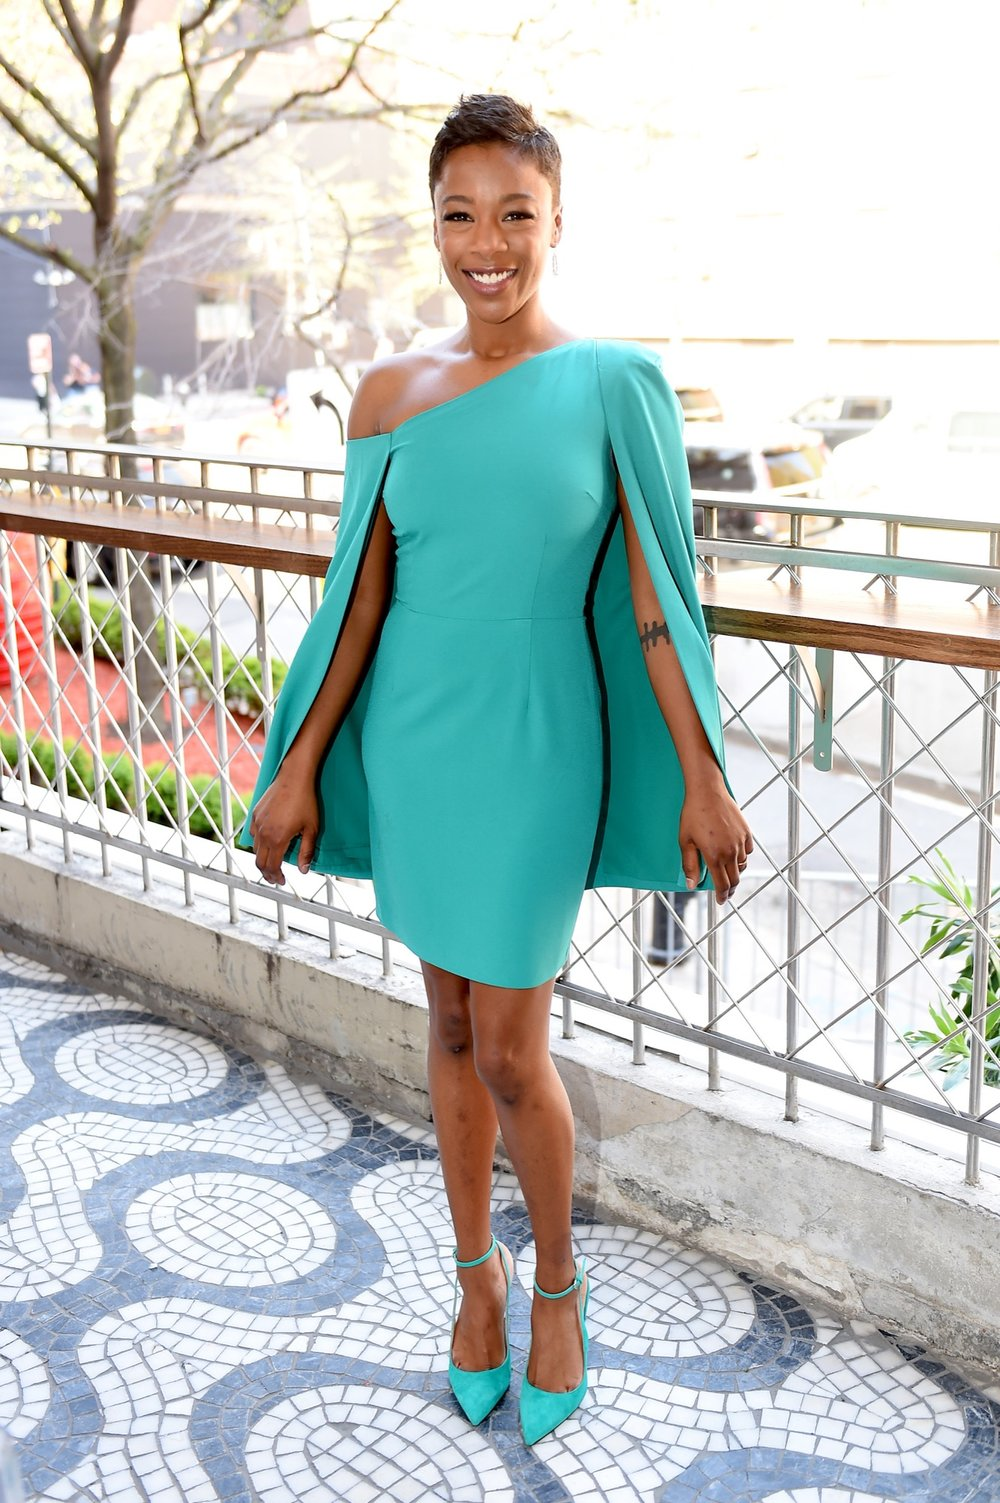 NEW YORK, NY - MAY 02:  Samira Wiley attends the Hulu Upfront 2018 Brunch at La Sirena on May 2, 2018 in New York City.  (Photo by Nicholas Hunt/Getty Images for Hulu) *** Local Caption *** Samira Wiley